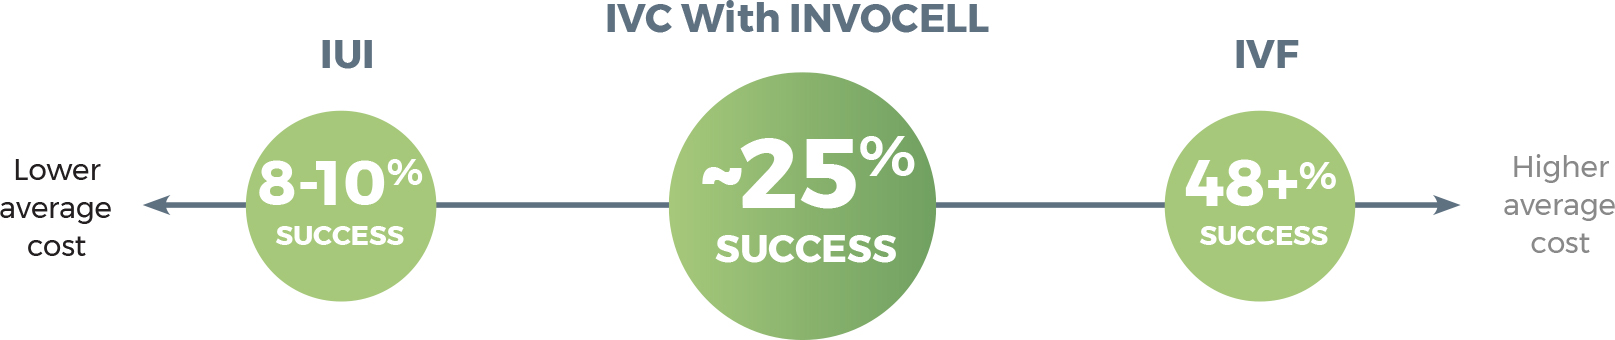 ivc with invocell success rates | Dallas IVF